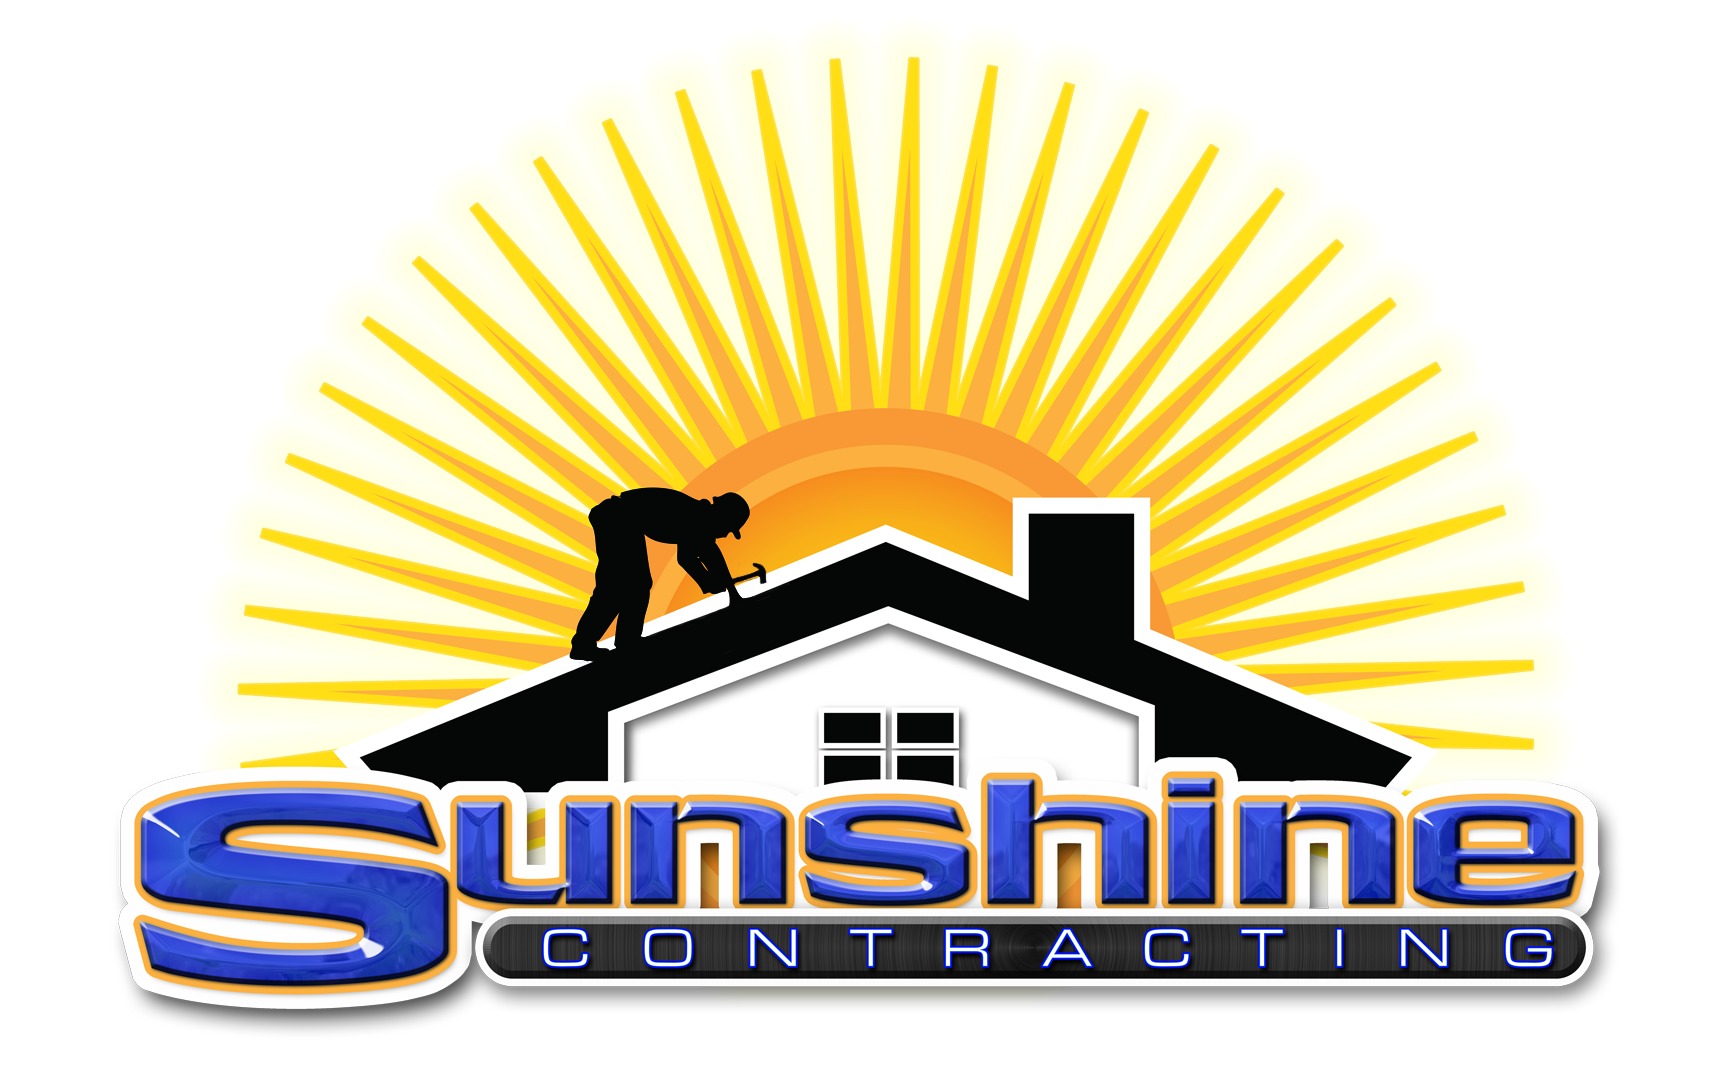 About Sunshine Contracting Sunshine Contracting